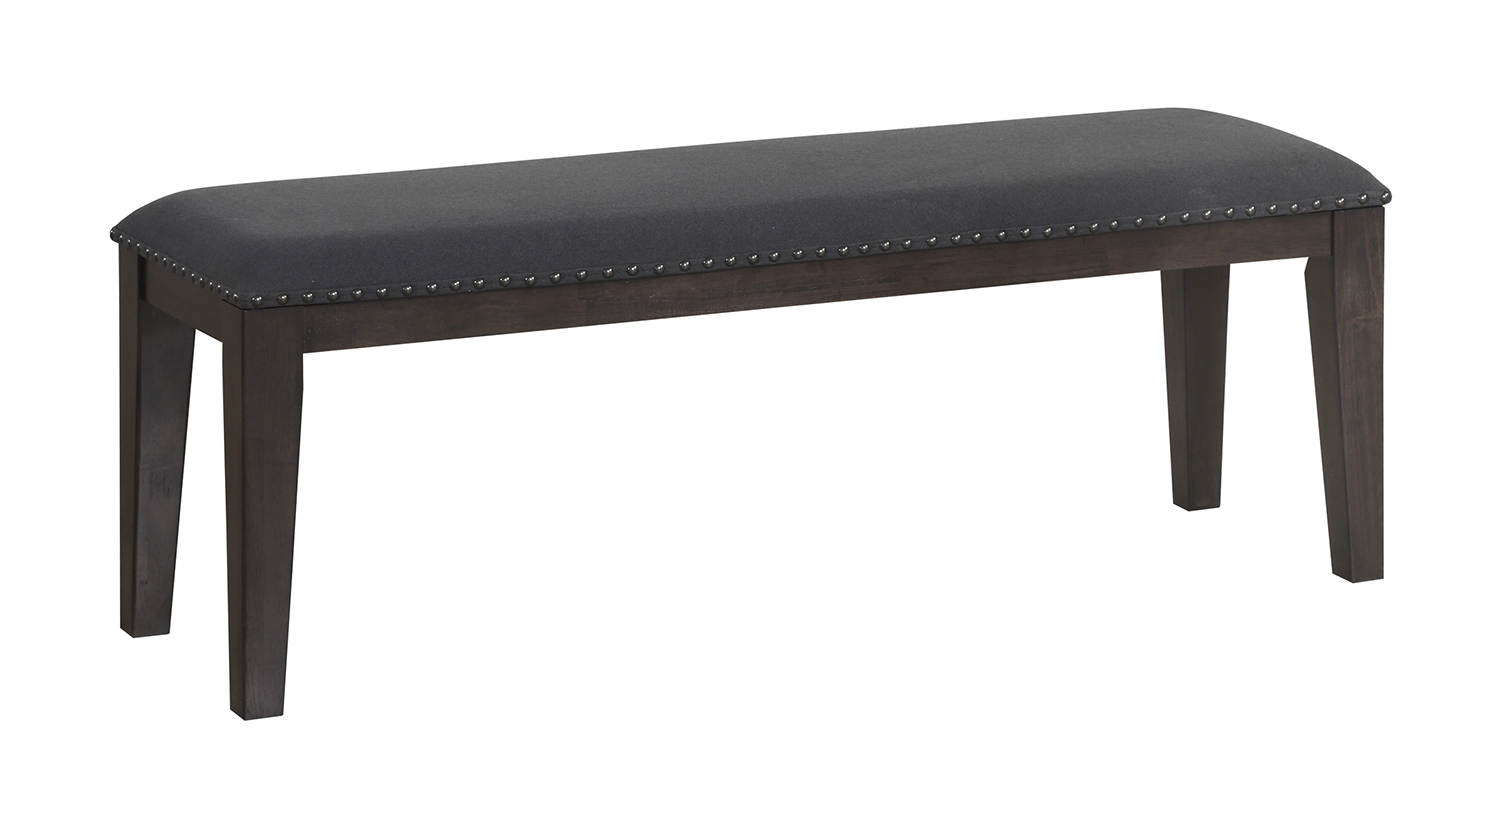 Homelegance Larchmont Bench - Charcoal